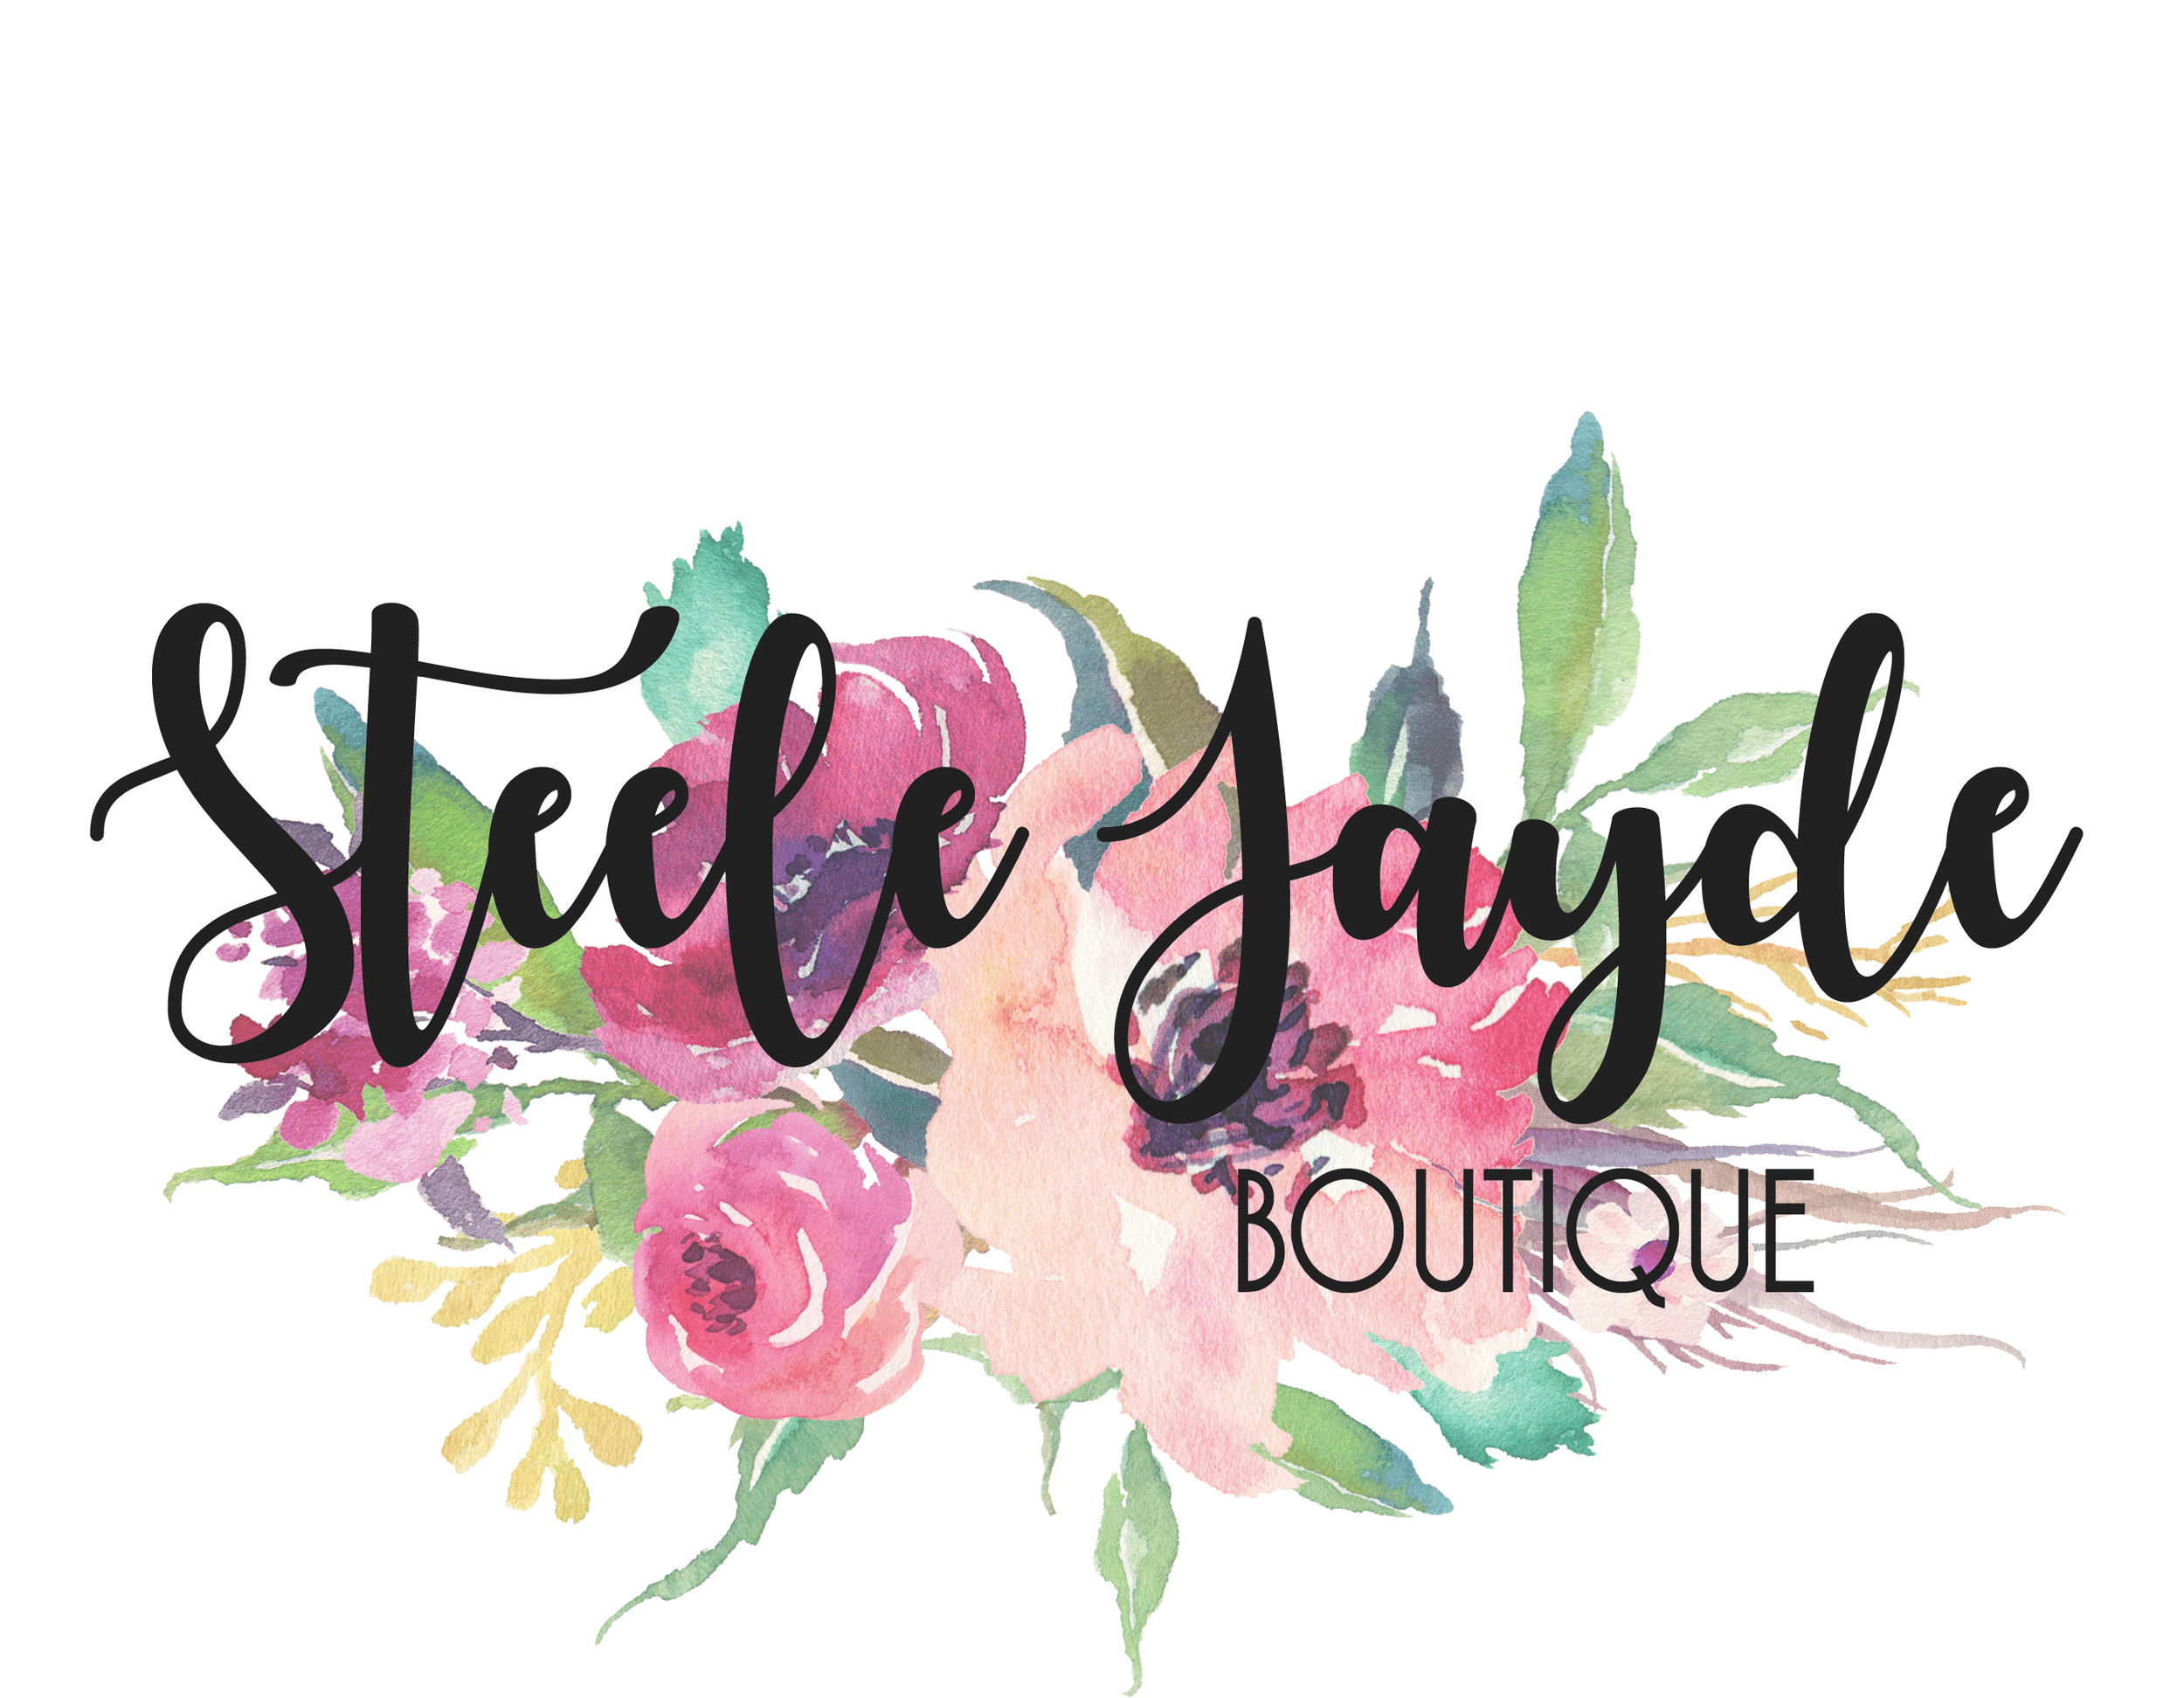 Steele Jayde Boutique